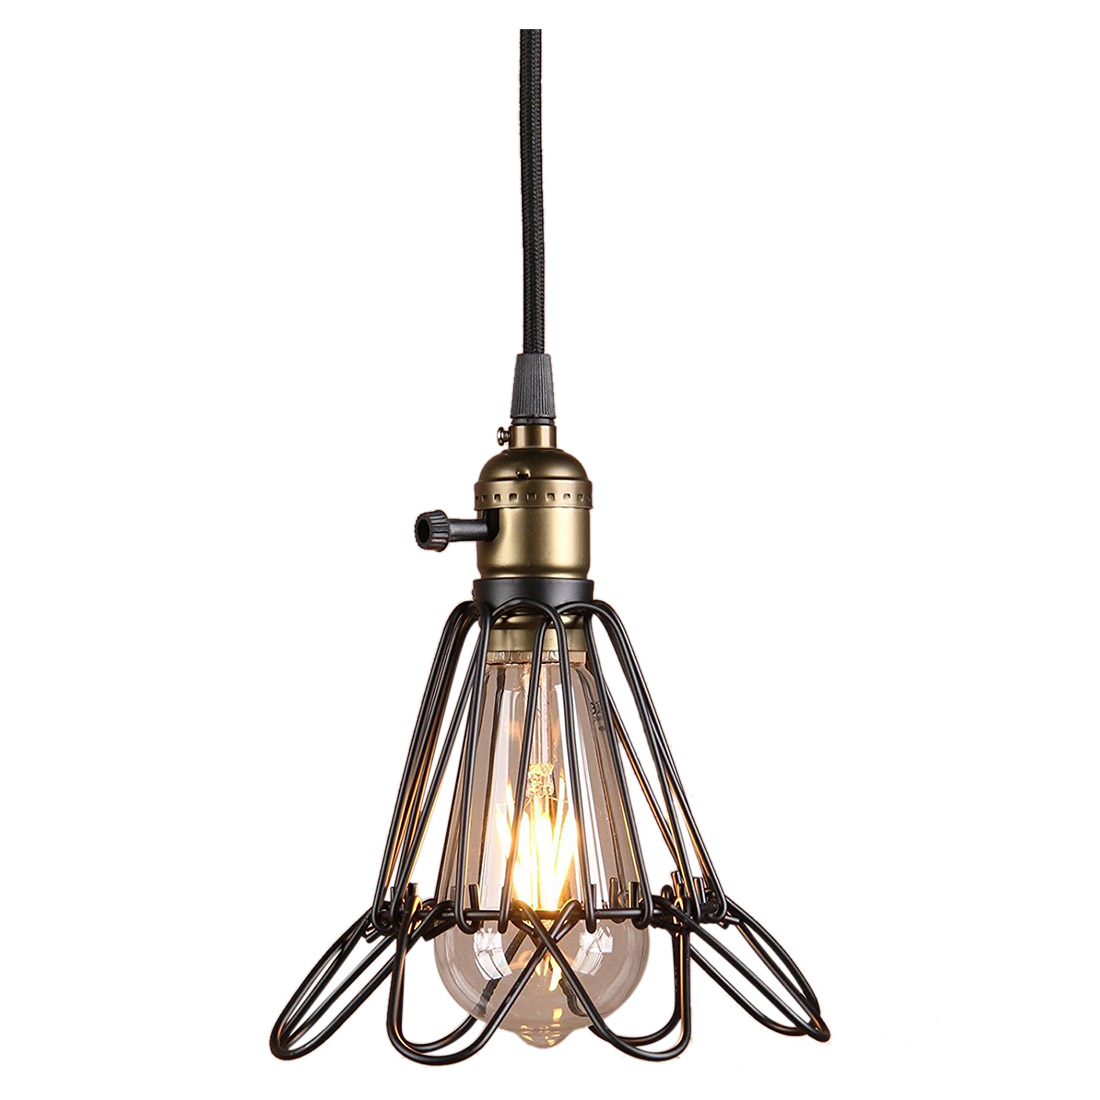 Chic Stylish Vintage Opening and Closing Birdcage Hanging Light Ceiling Pedant Light Fixture Fitting